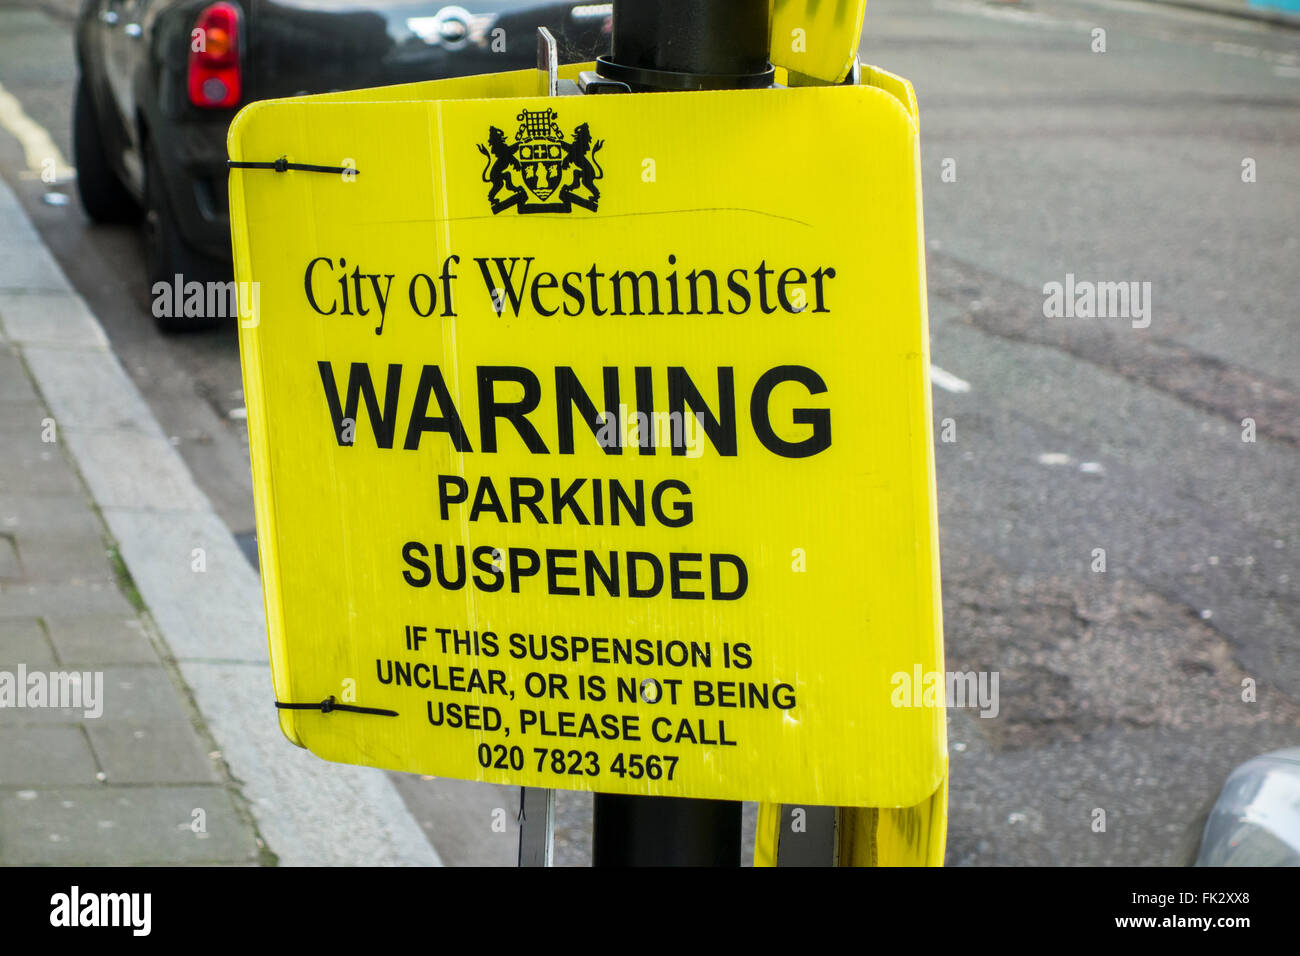 Parking suspended sign, Westminster Council, London, UK - Stock Image